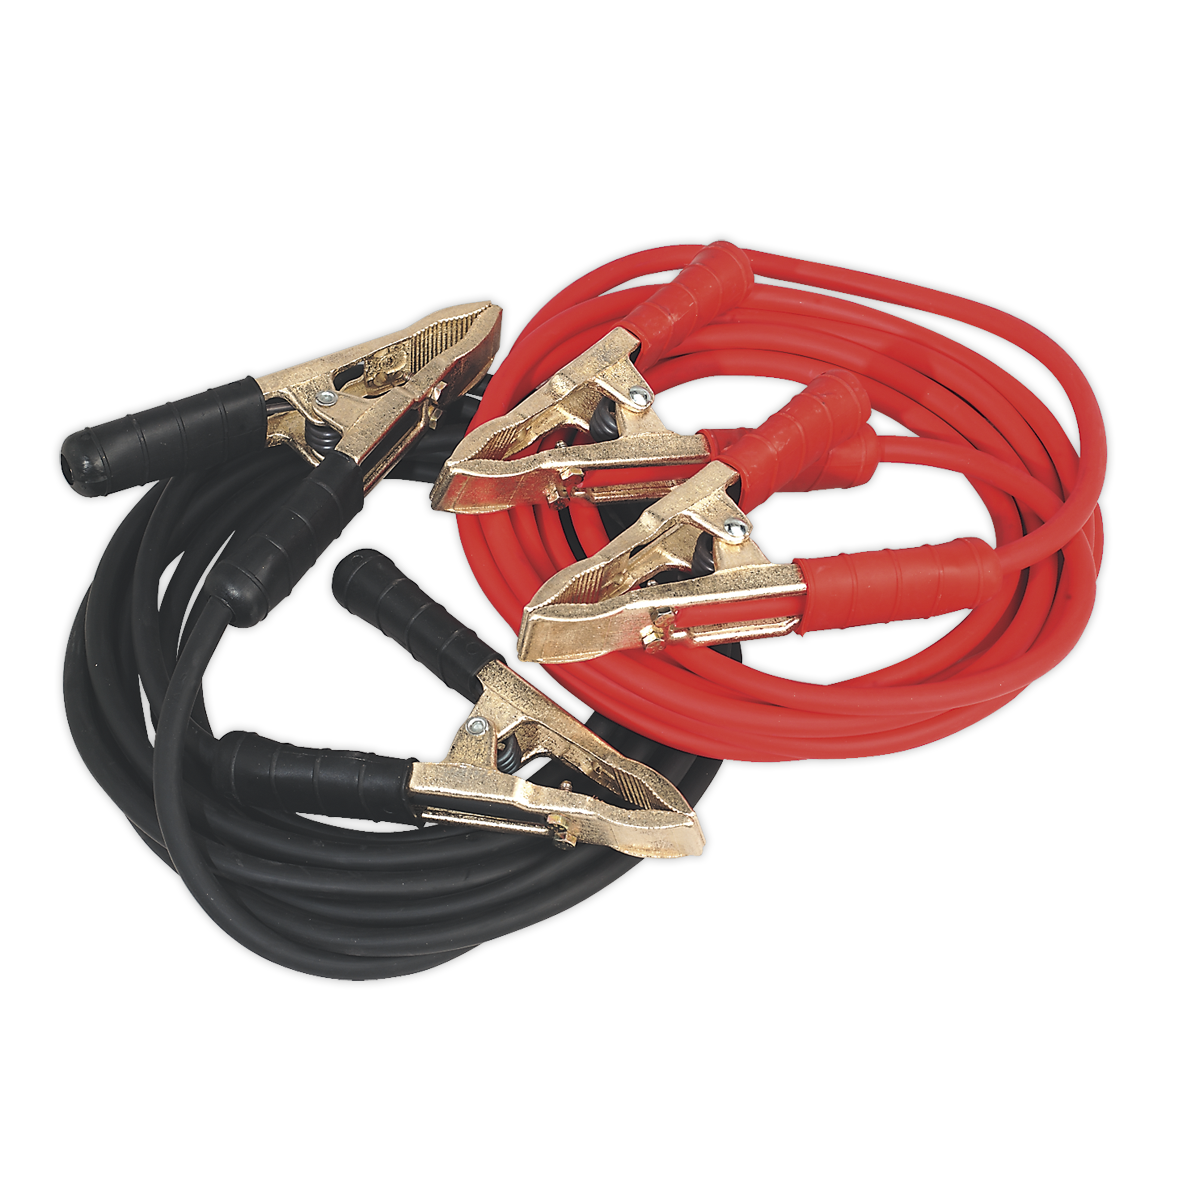 Booster Cables Extra-Heavy-Duty Clamps 25mm² x 5m Copper 650A